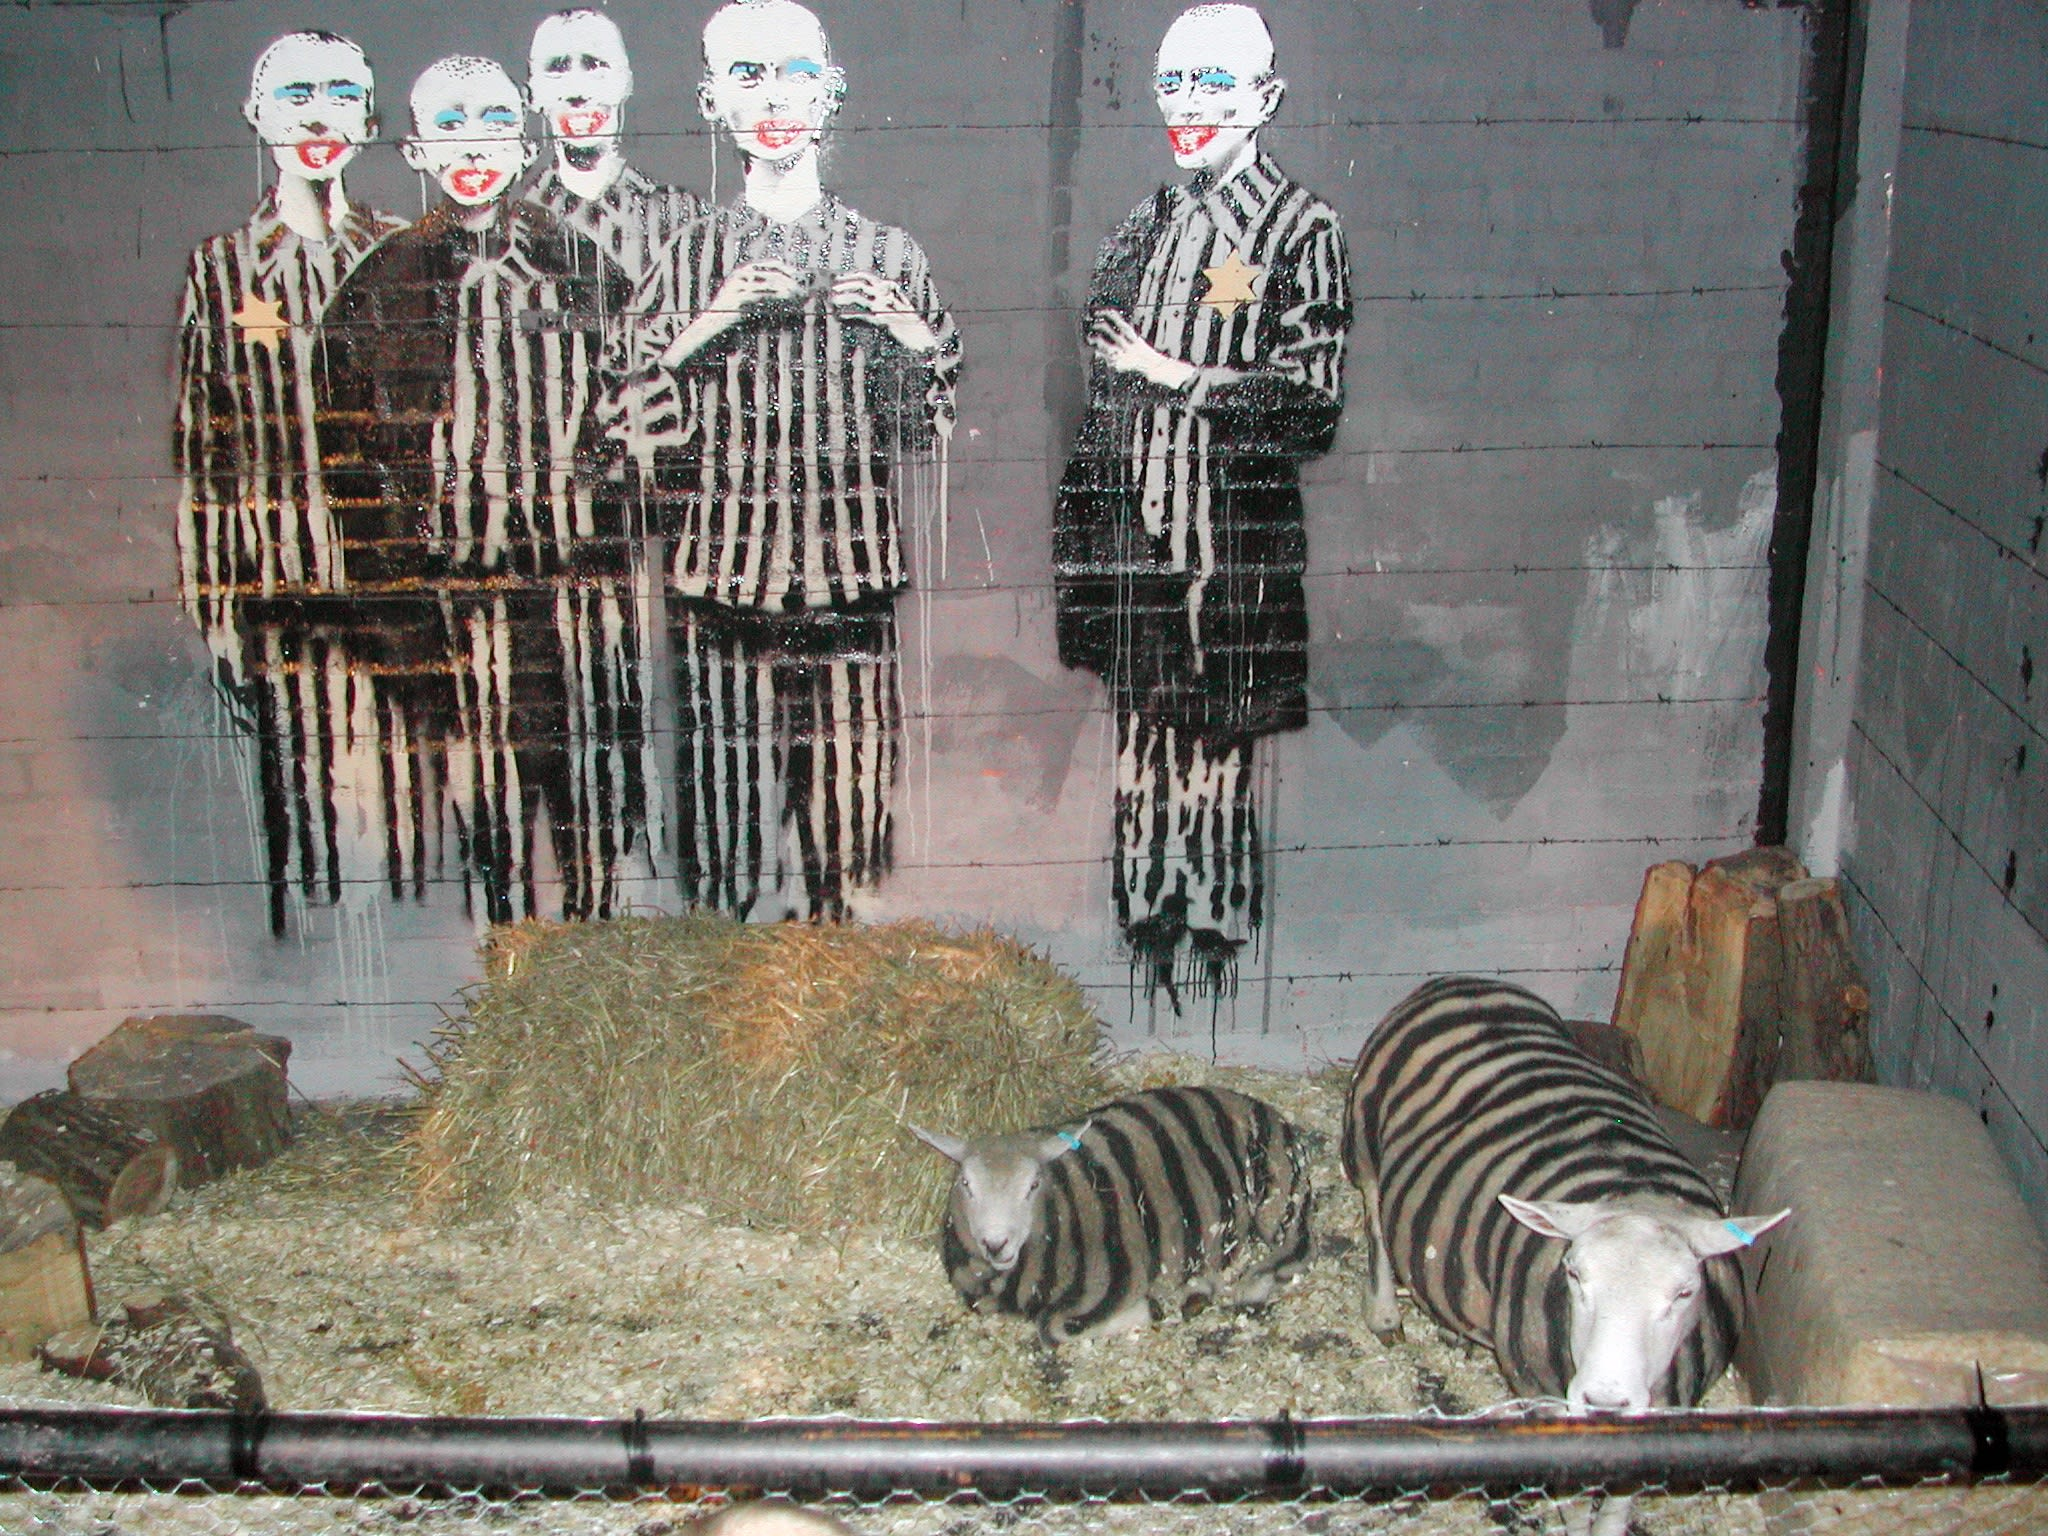 Turf War by Banksy